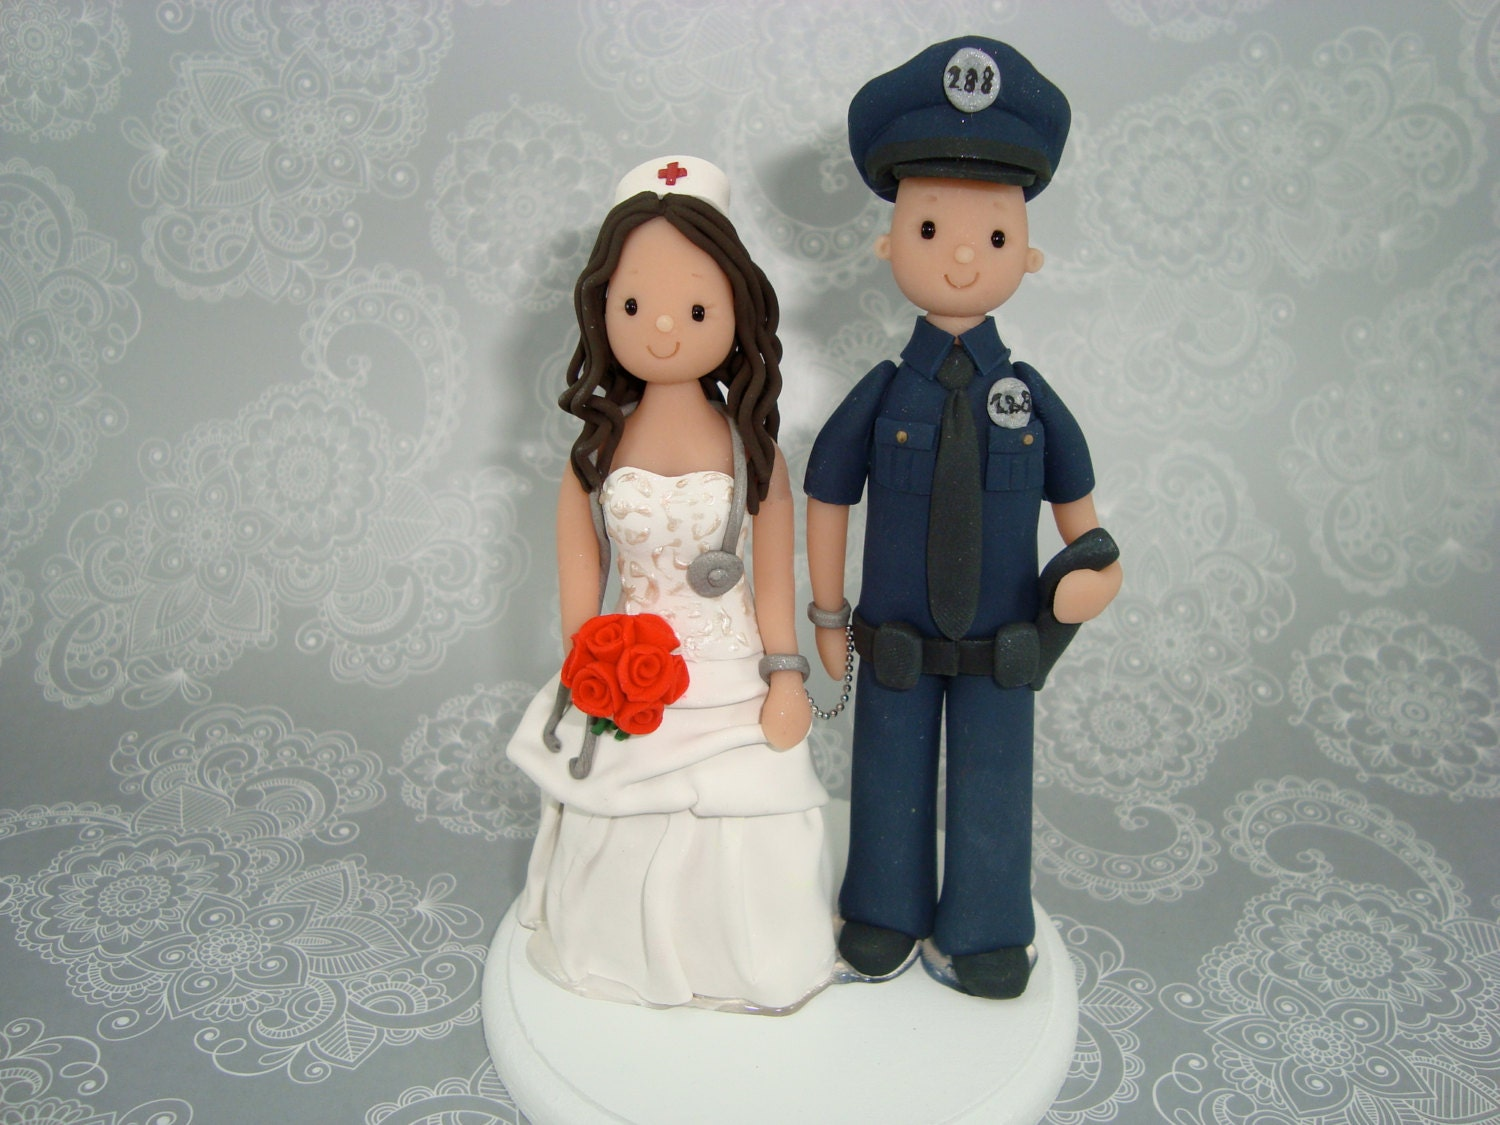 Policeman Amp Nurse Personalized Wedding Cake Topper By Mudcards